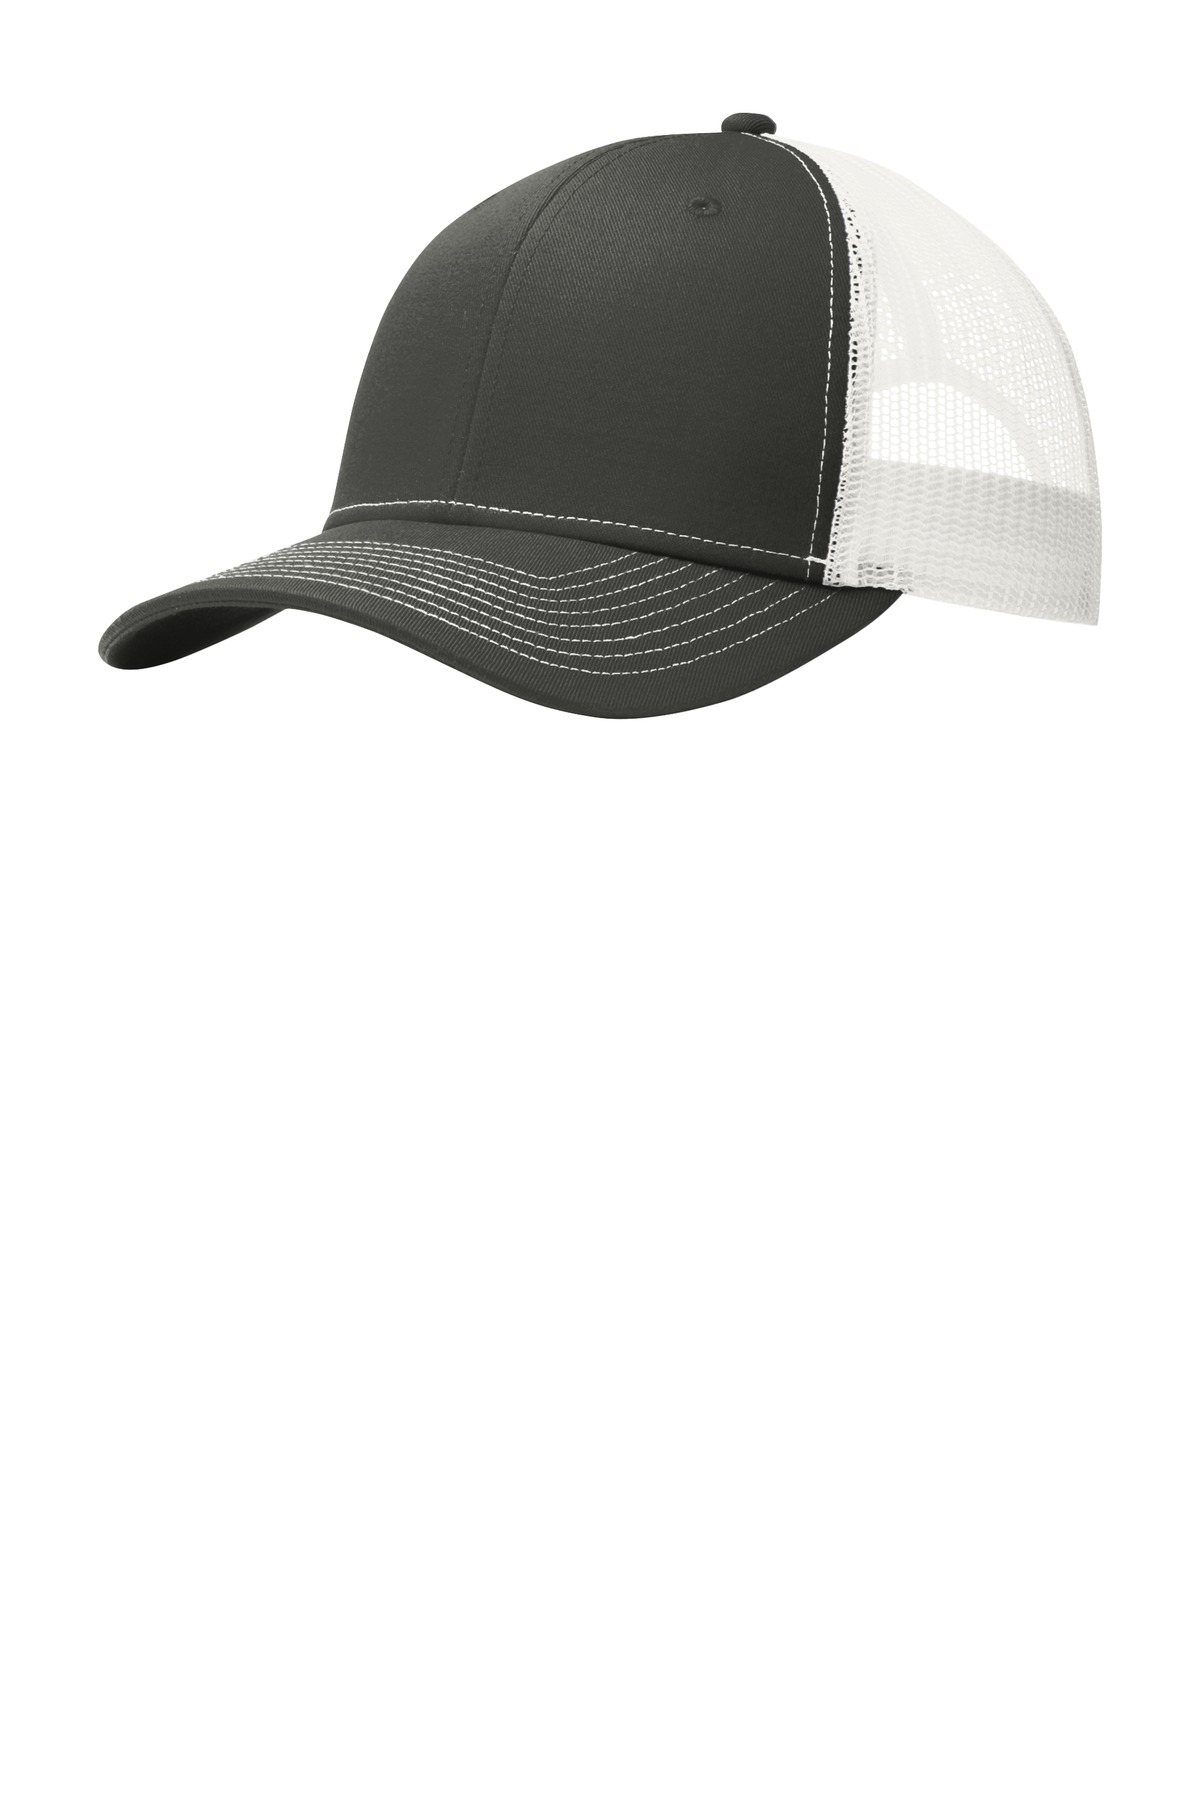 Port Authority ®  Snapback Trucker Cap. C112 - Grey Steel/ White